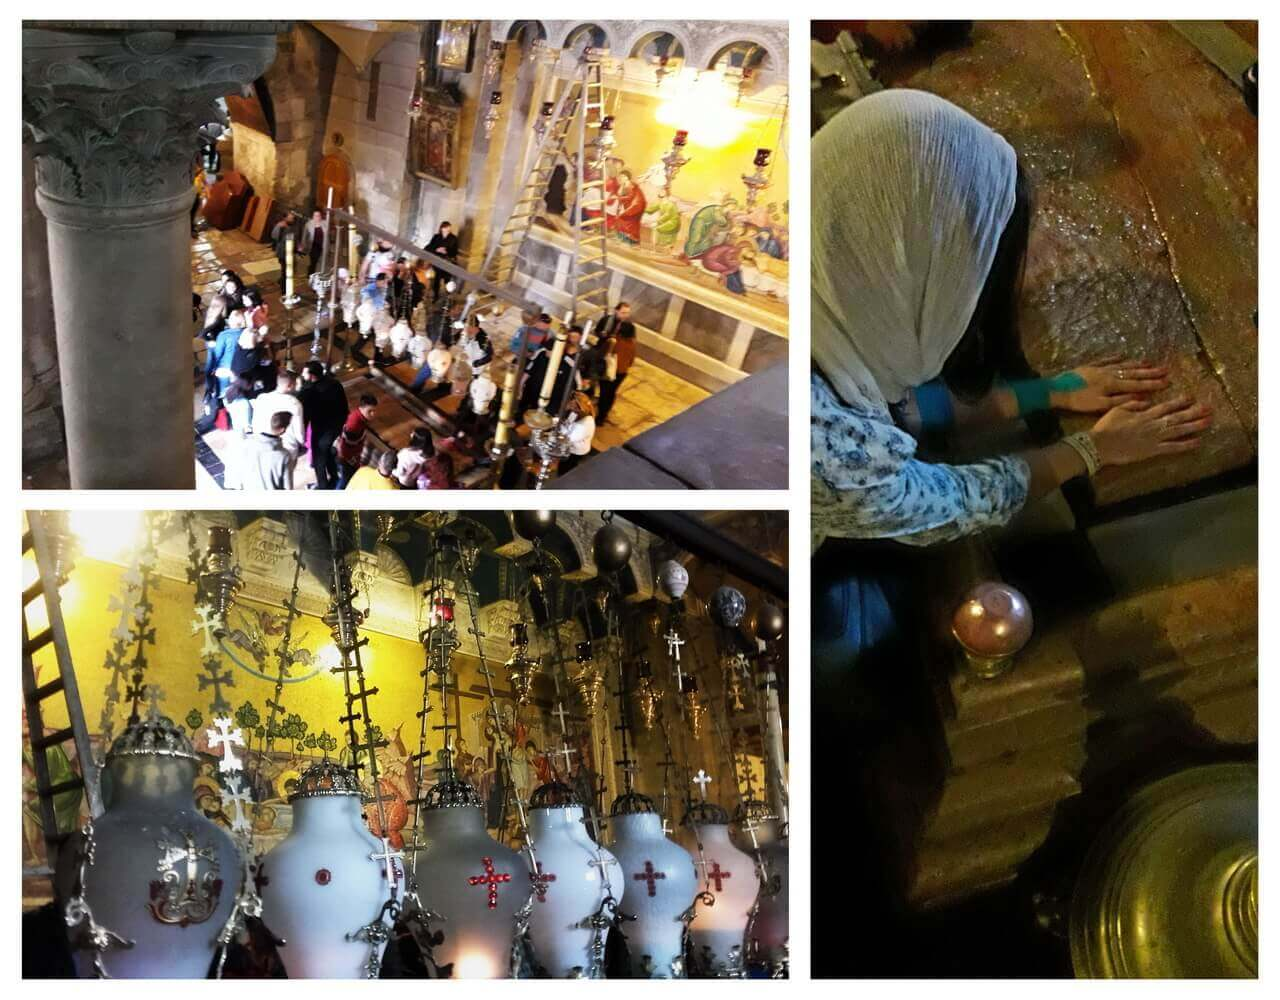 Jerusalem, The Stone of Anointing in the Church of Holy Sepulchre